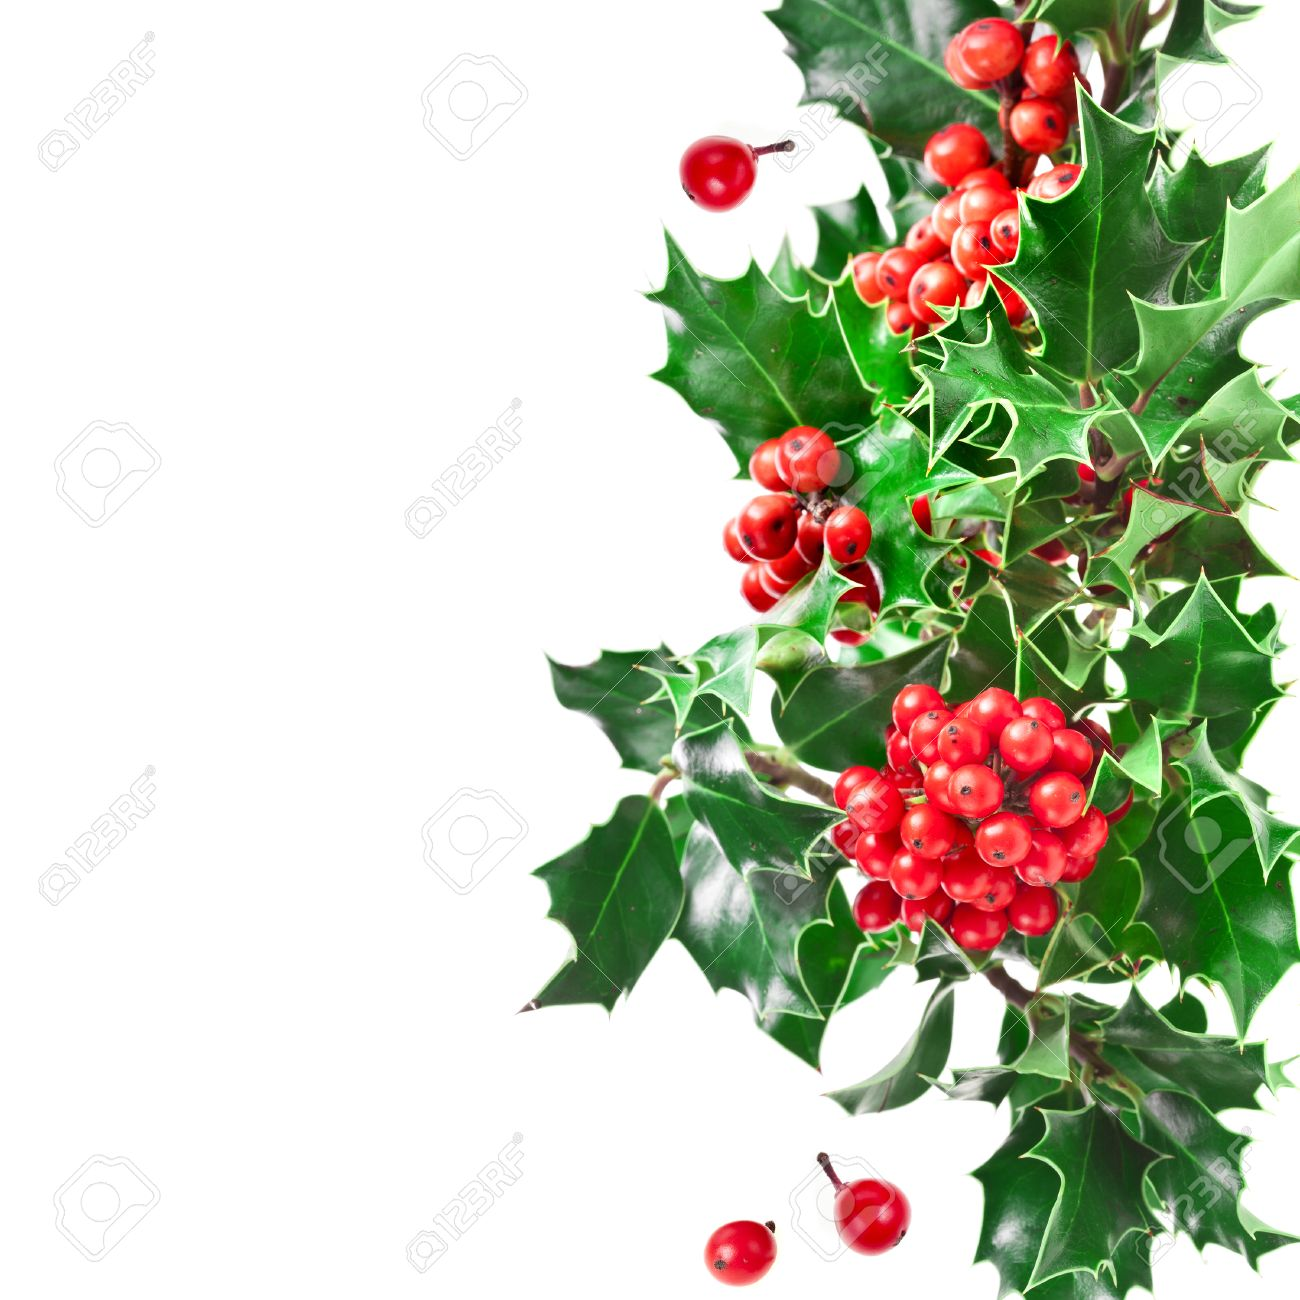 christmas border with holly plant isolated on white background stock photo - Holly Plant